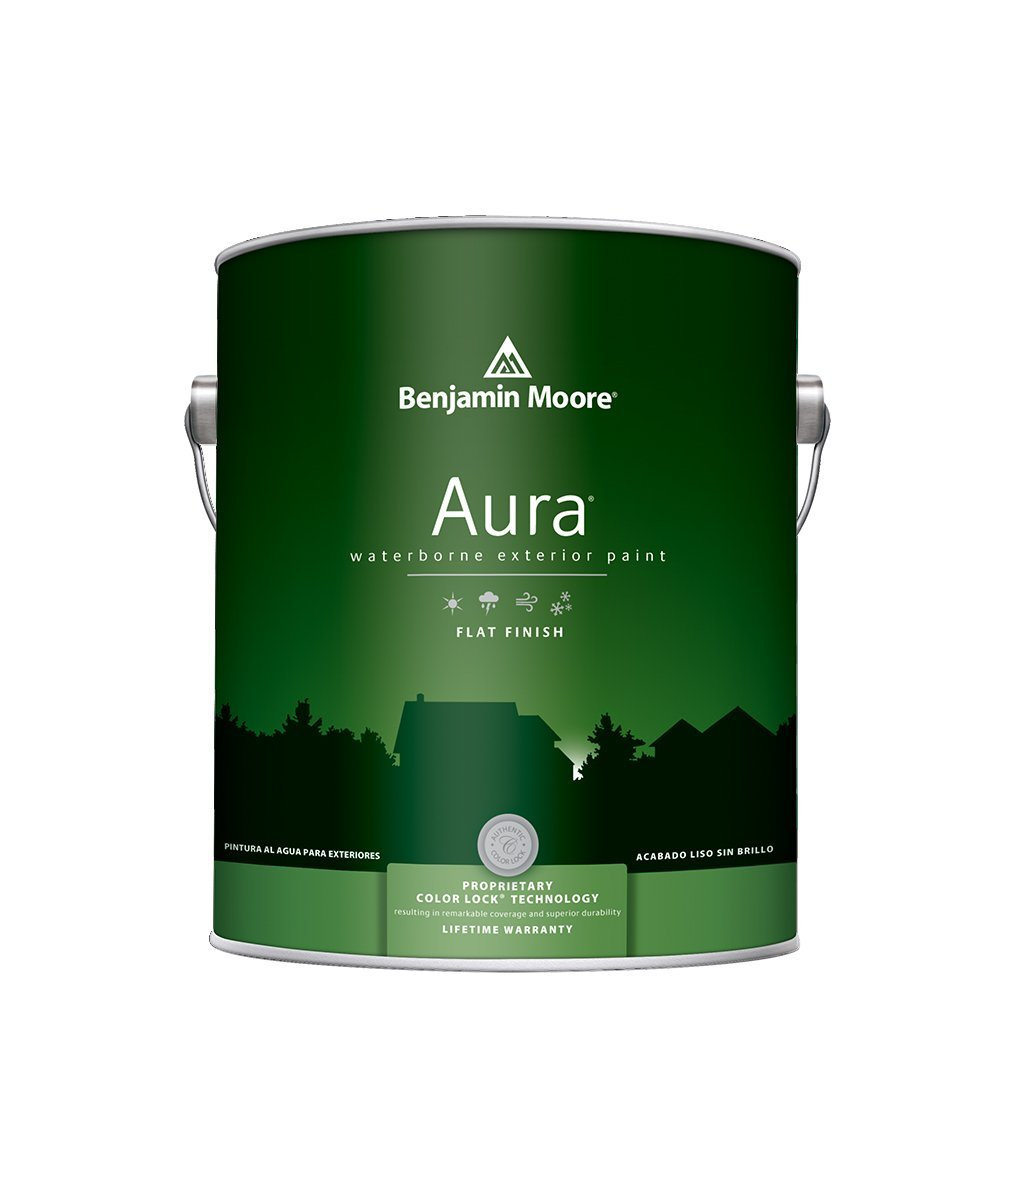 Benjamin Moore Aura Exterior Flat Paint available at Wallauer Paint & Design.